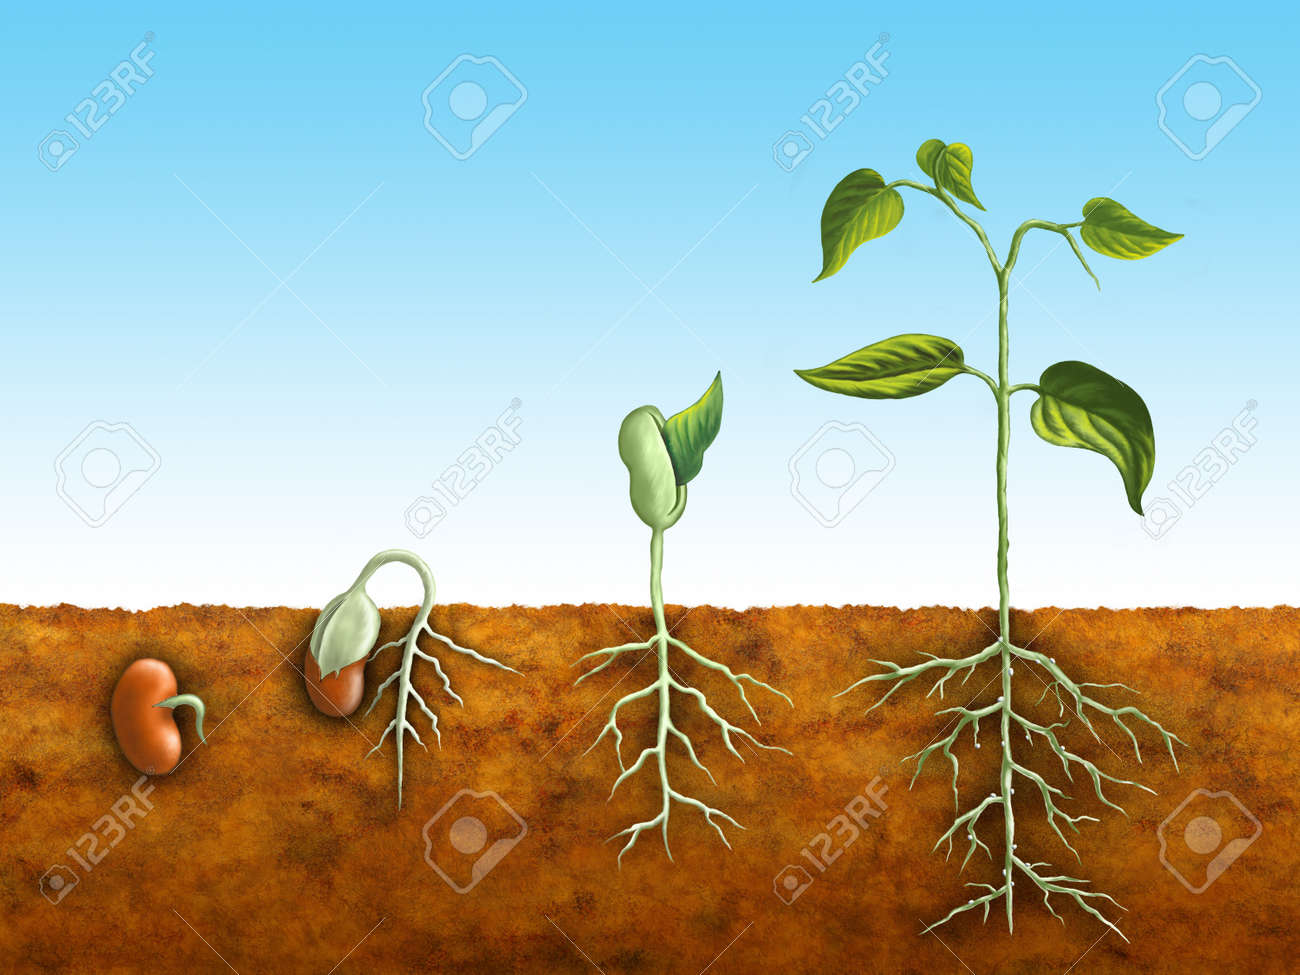 The germination process of a bean plant. Digital illustration. Stock Photo - 4581769